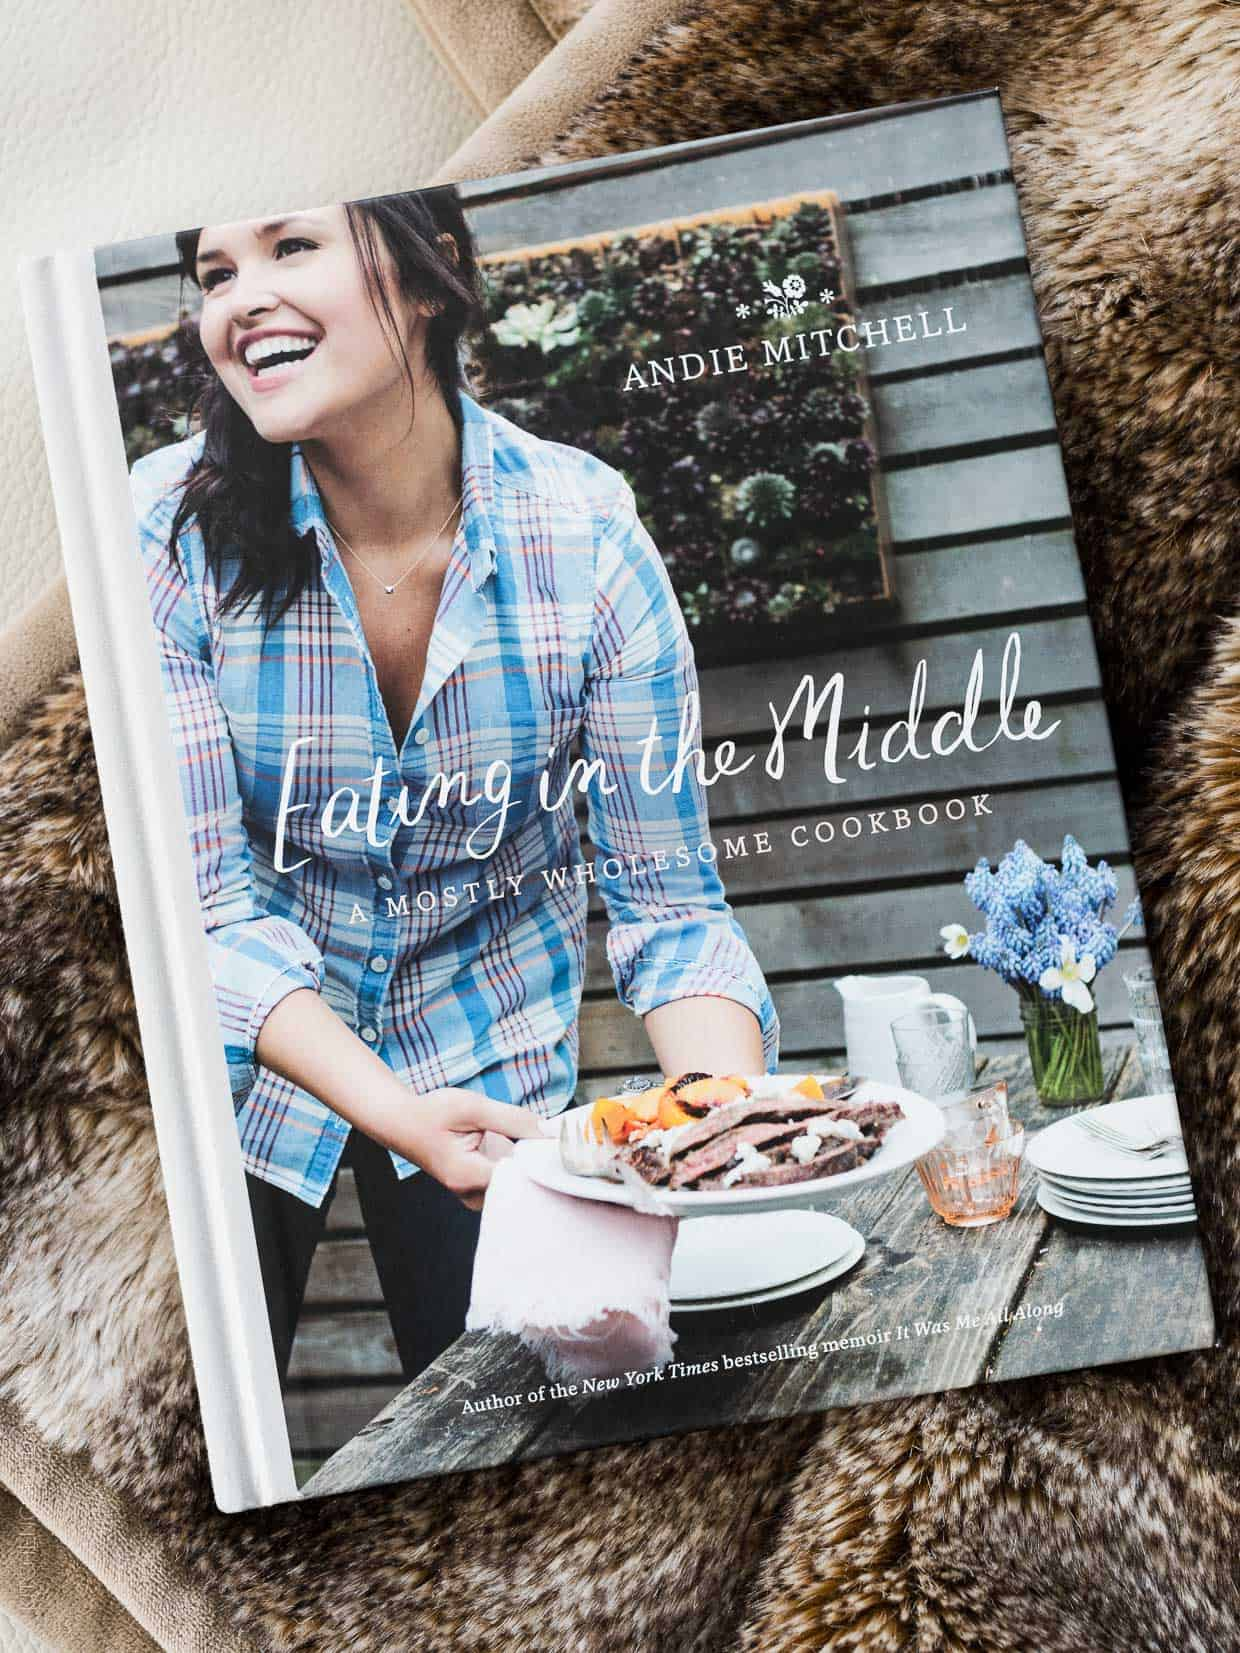 The book cover of Andie Mitchell's cookbook, Eating in the Middle.